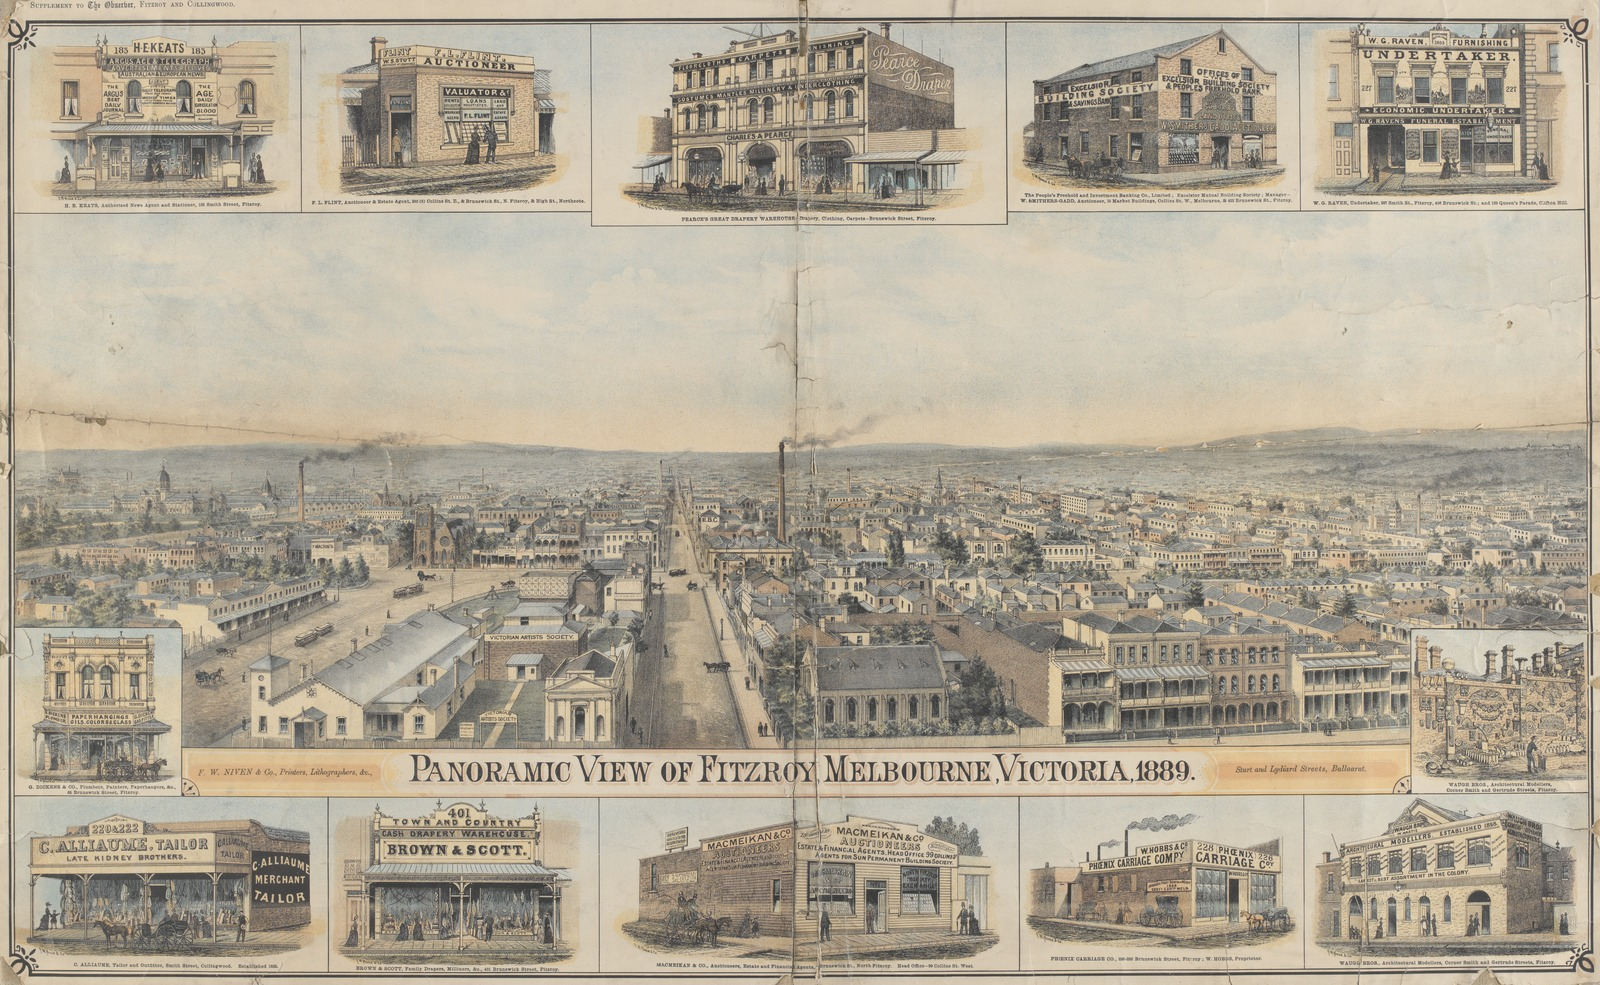 Panoramic view of Fitzroy